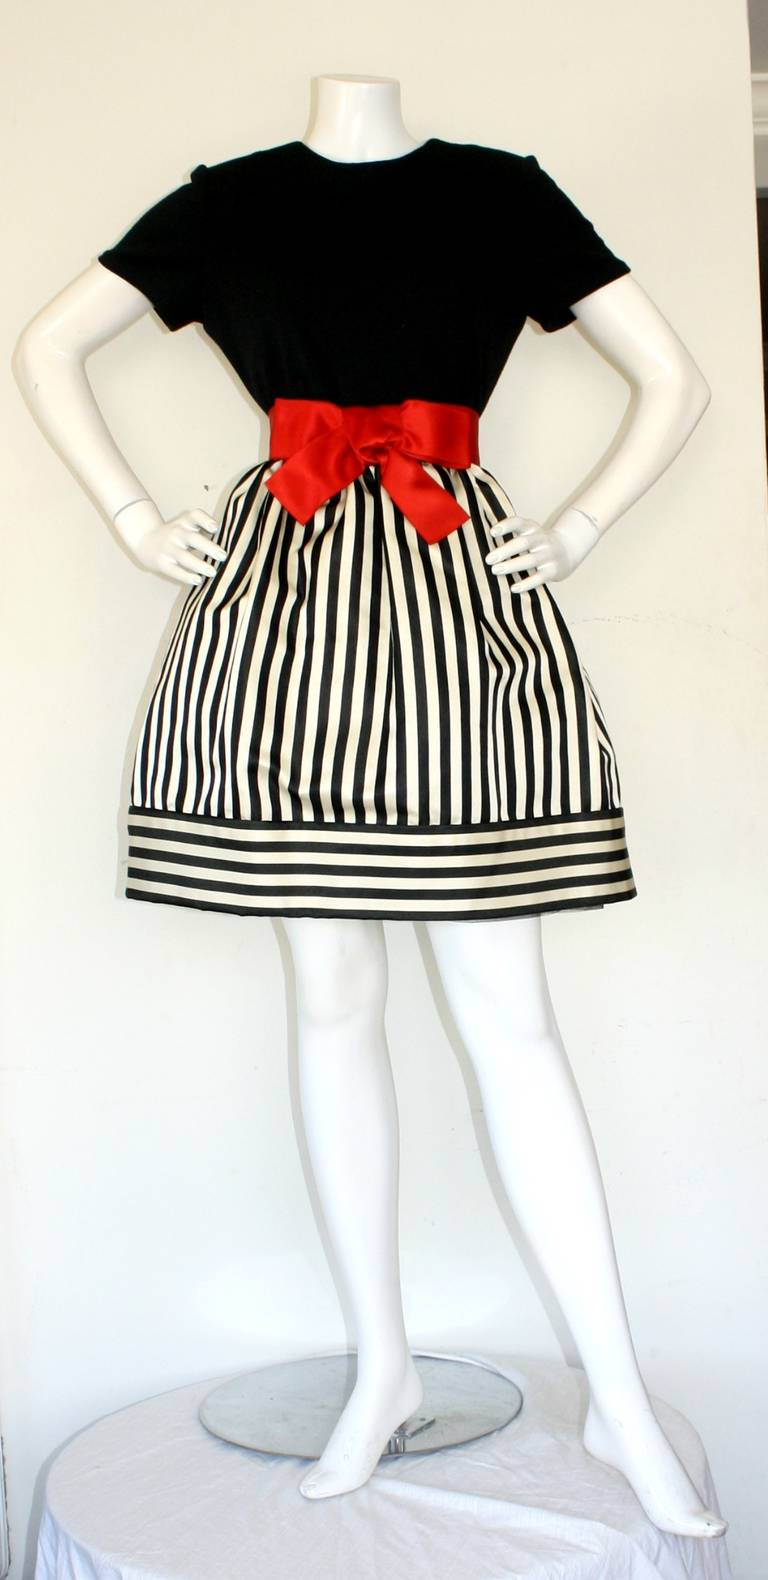 Featuring the cutest vintage Bill Blass dress! Built in crinoline, under a chic black and white silk skirt. Attached red silk bow belt, with a fitted black bodice. In great condition. Approximately Size Small-Medium  Measurements: 38 inch